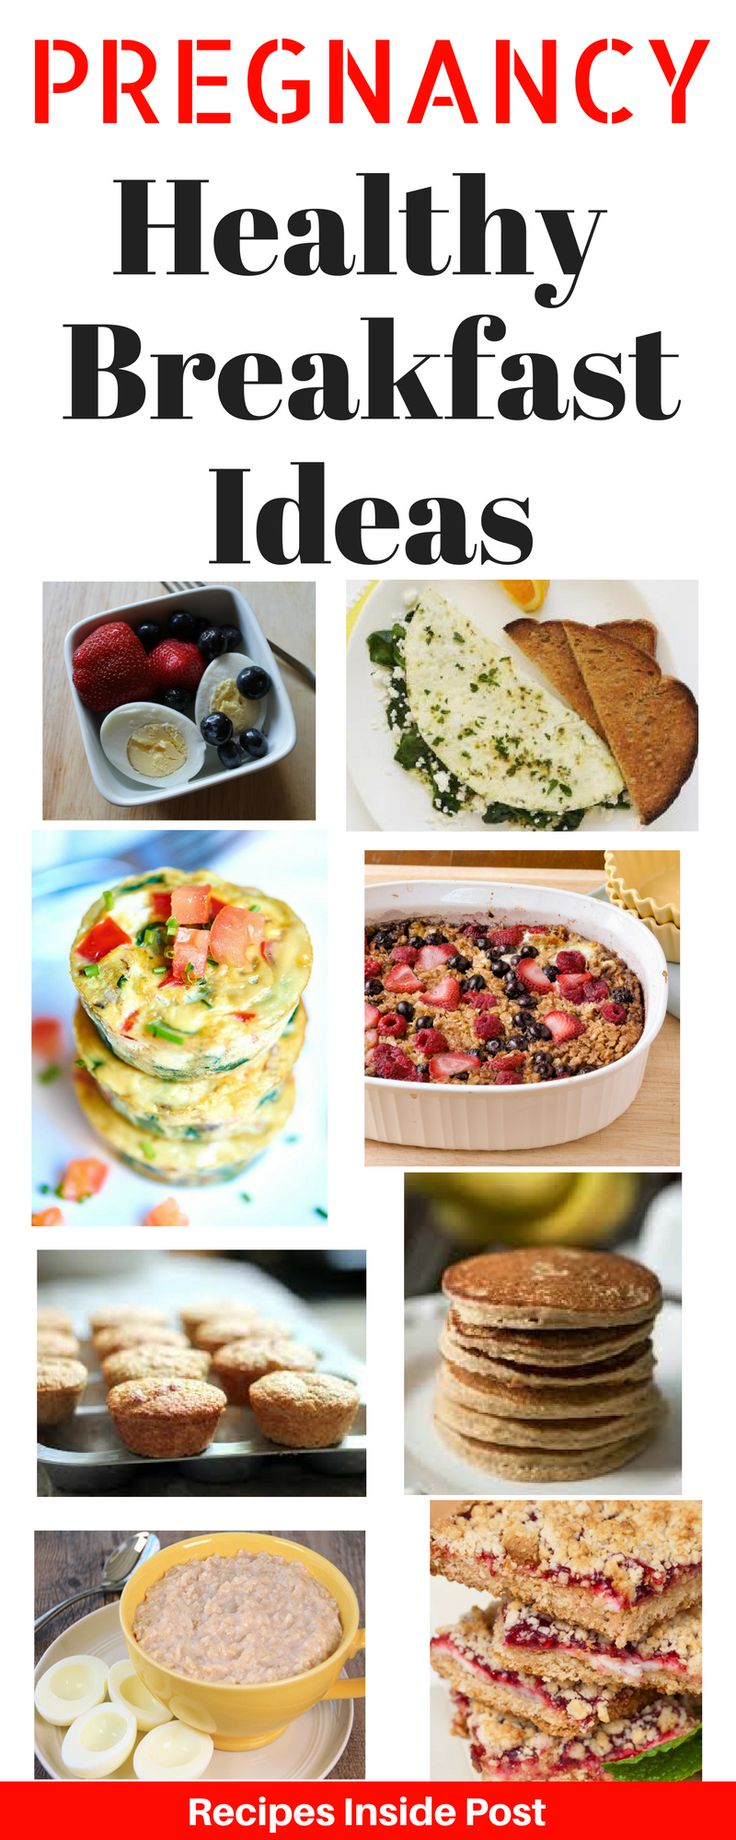 Healthy Breakfast Ideas for Pregnant Moma's.